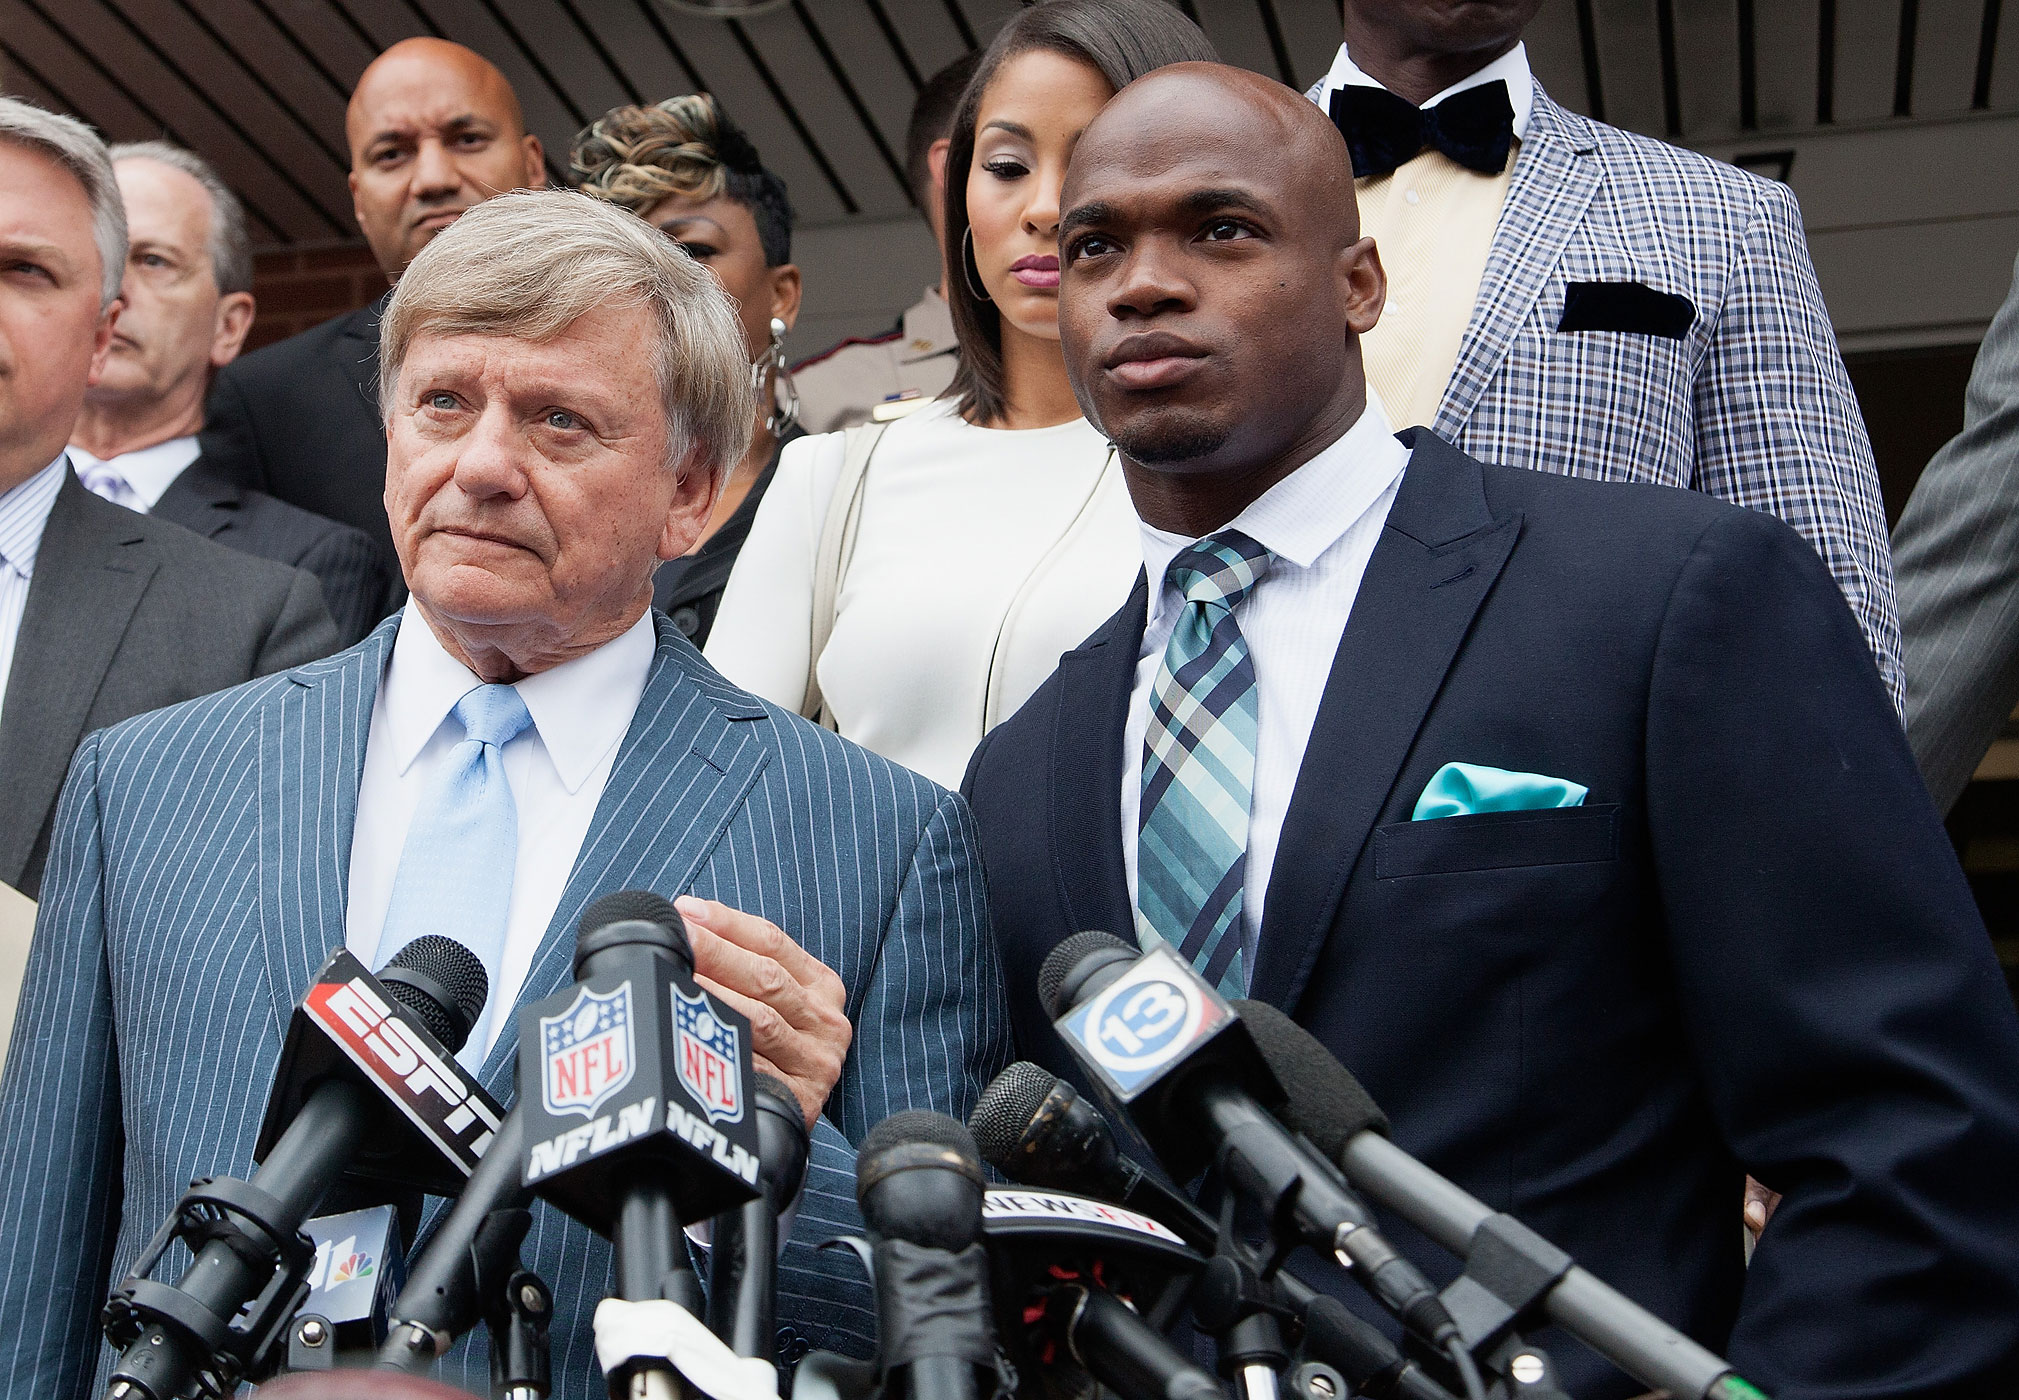 Defense attorney Rusty Hardin, left, and NFL running back Adrian Peterson of the Minnesota Vikings address the media on November 4, 2014 in Conroe, Texas.